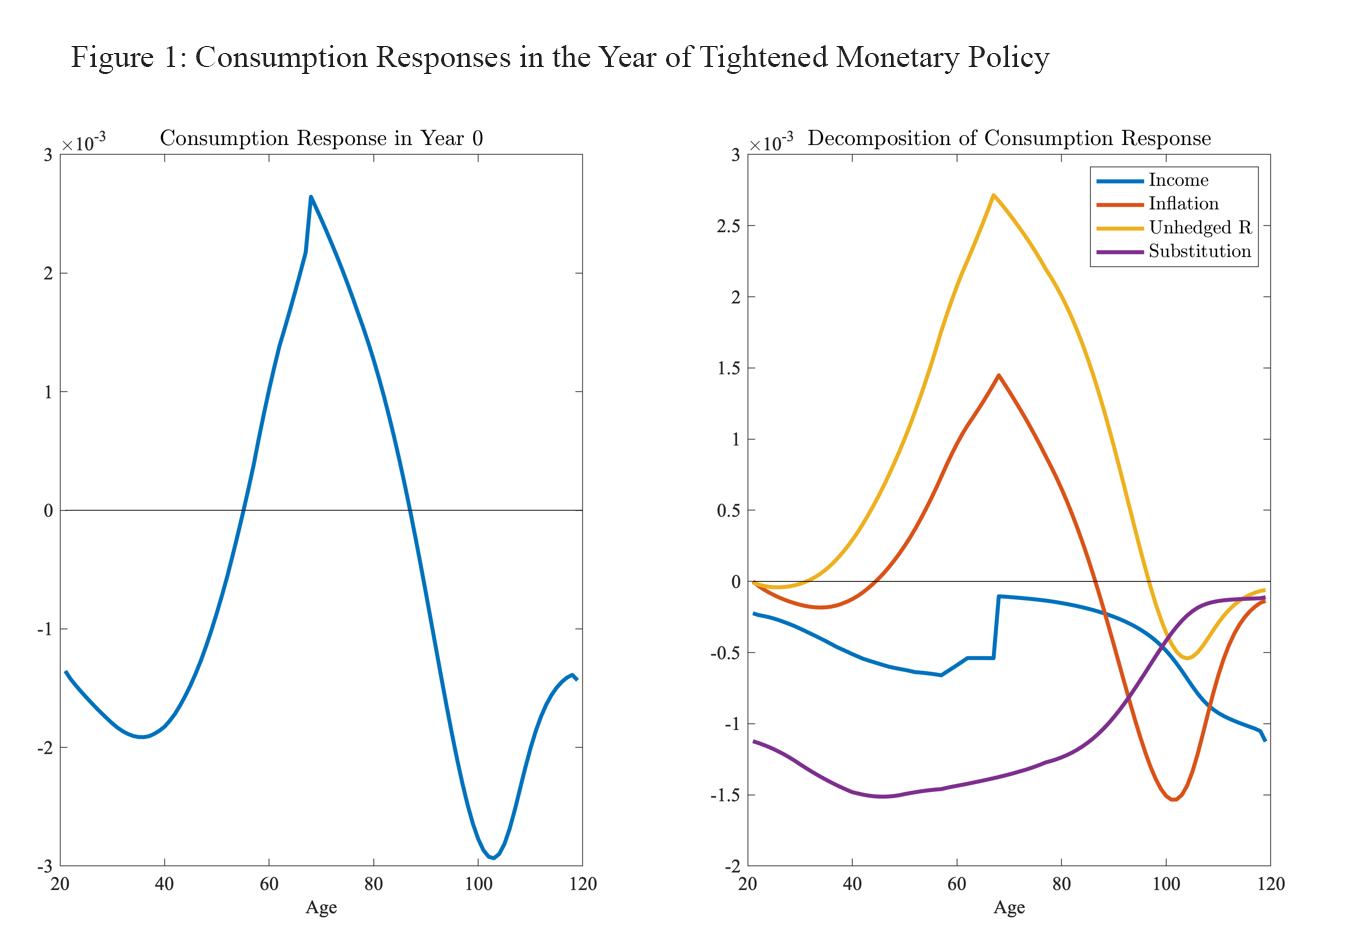 Figure 1: Consumption Responses in the Year of Tightened Monetary Policy